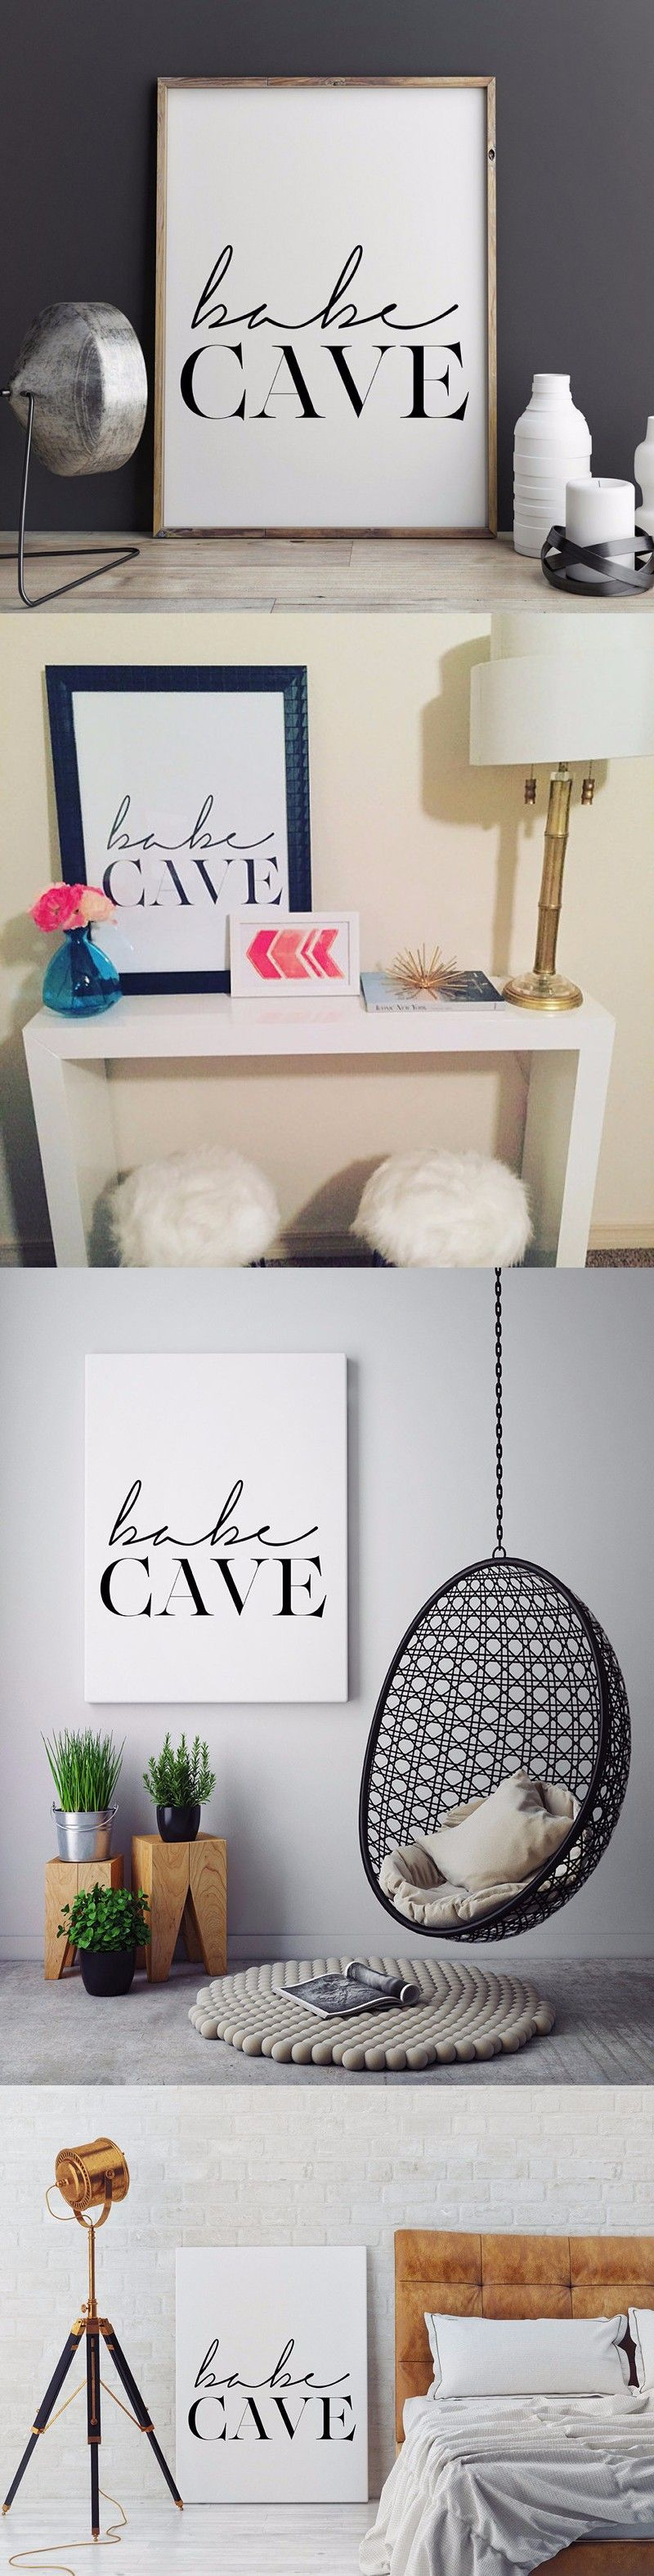 unframed canvas prints wall paintings modern home decor abstract hot babe cave wall art scandinavian poster affiche scandinave babe cave typography print canvas painting bedroom home decor